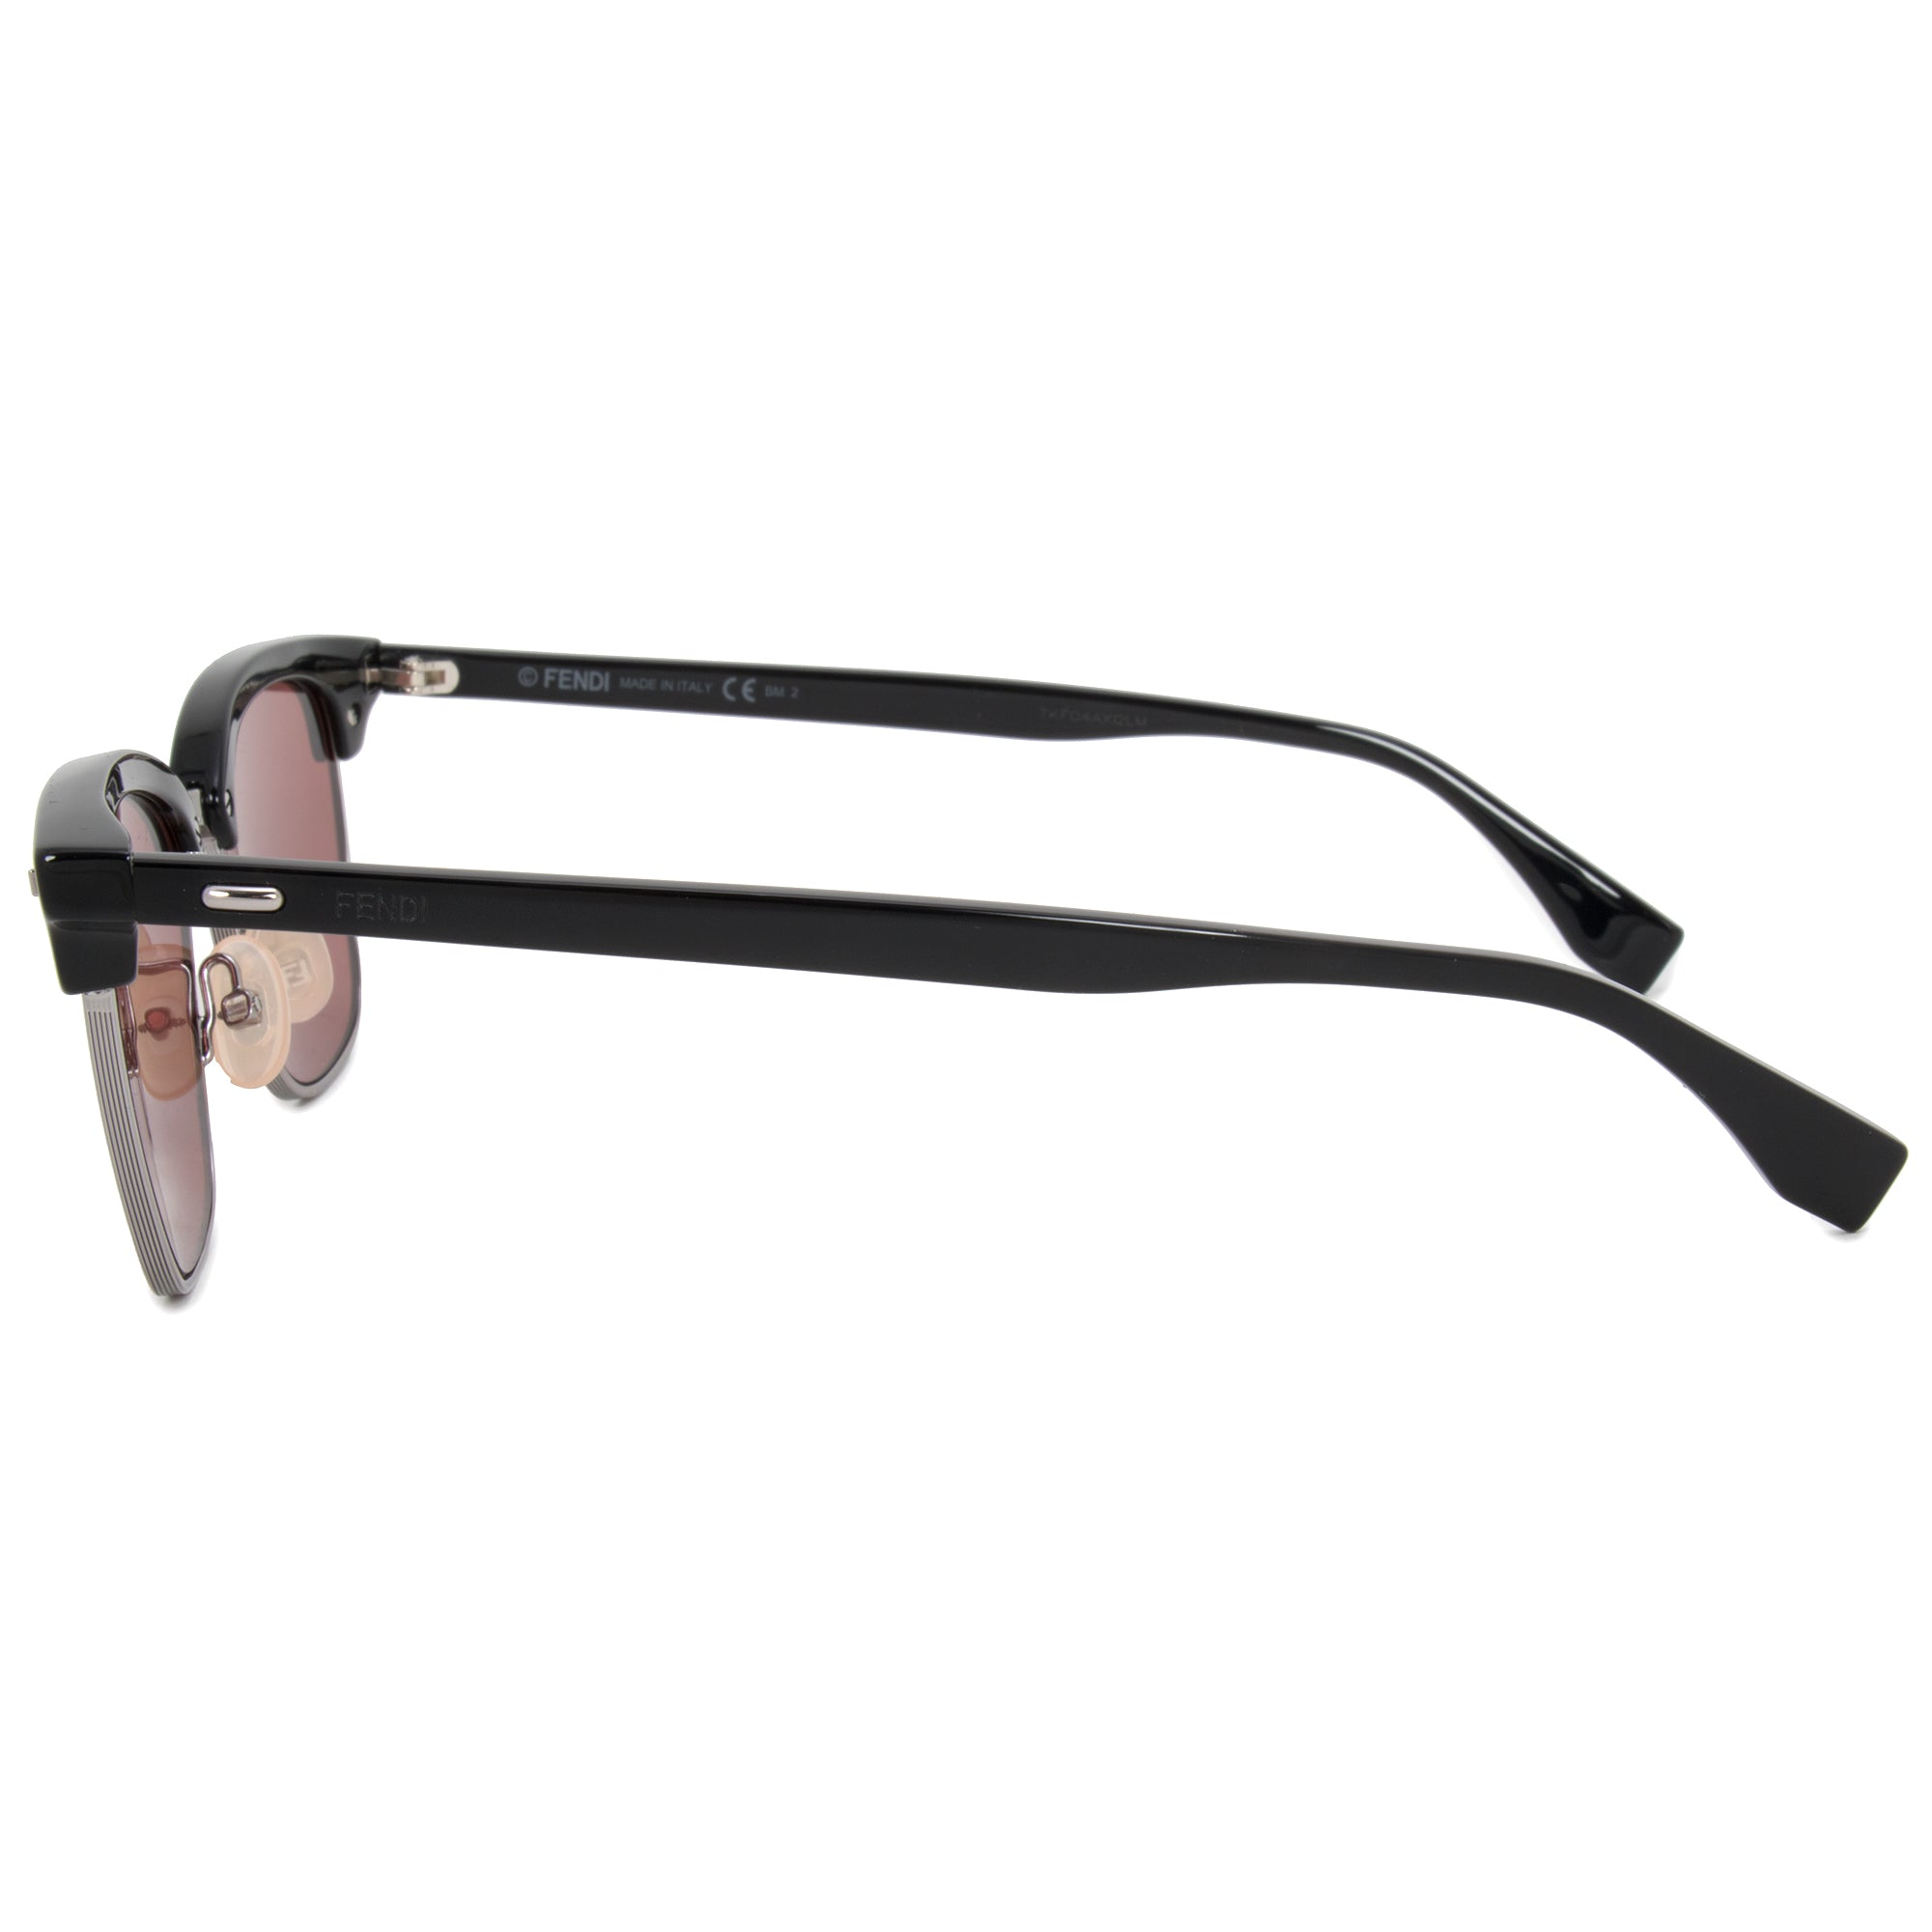 Fendi Browline FFM0003S 807 4S 52 Rectangle Sunglasses